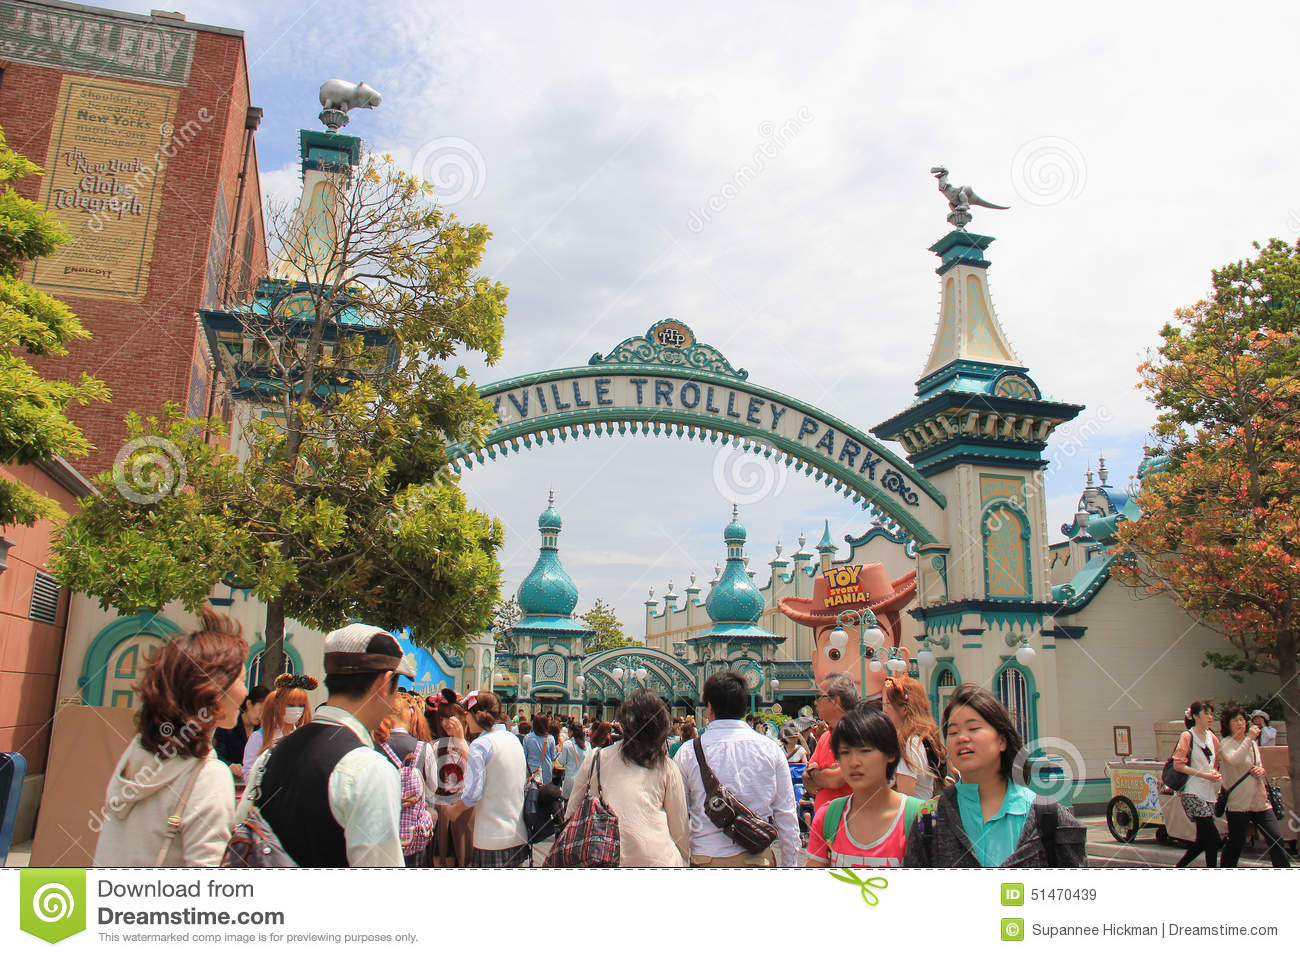 Coney Island and Victorian Culture